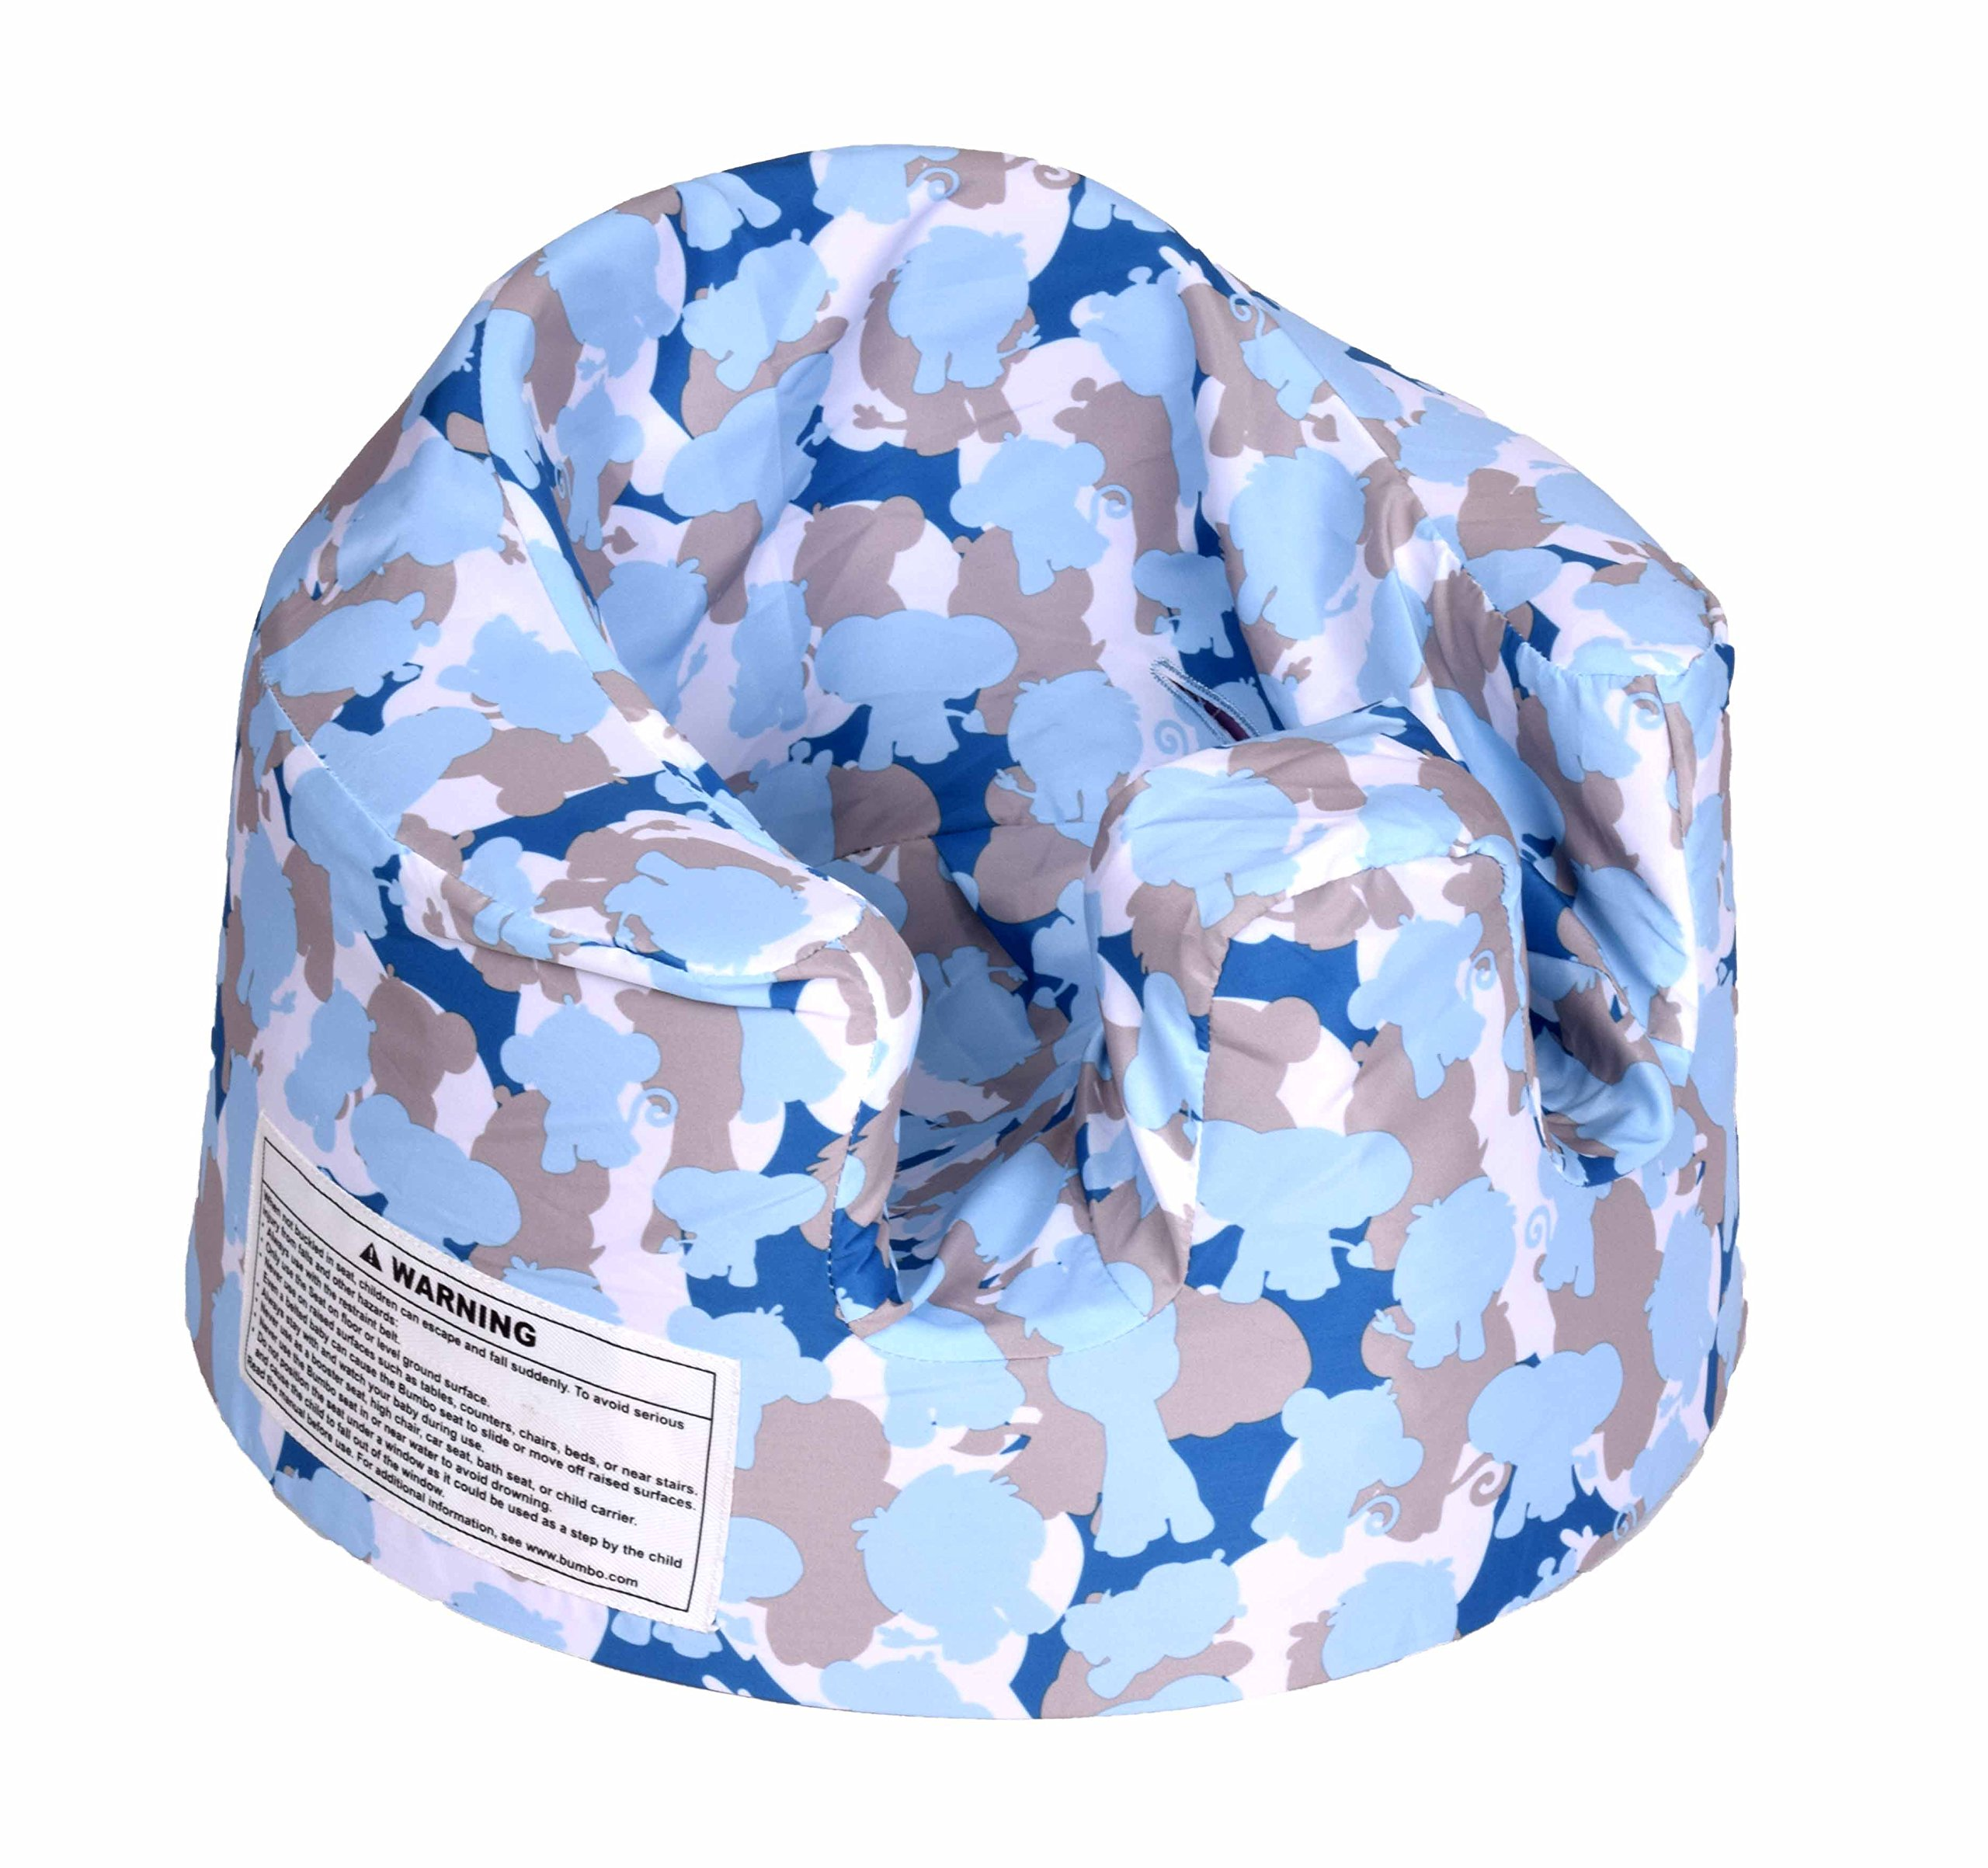 Bumbo Baby Support Floor Seat Cover   Blue Camouflage